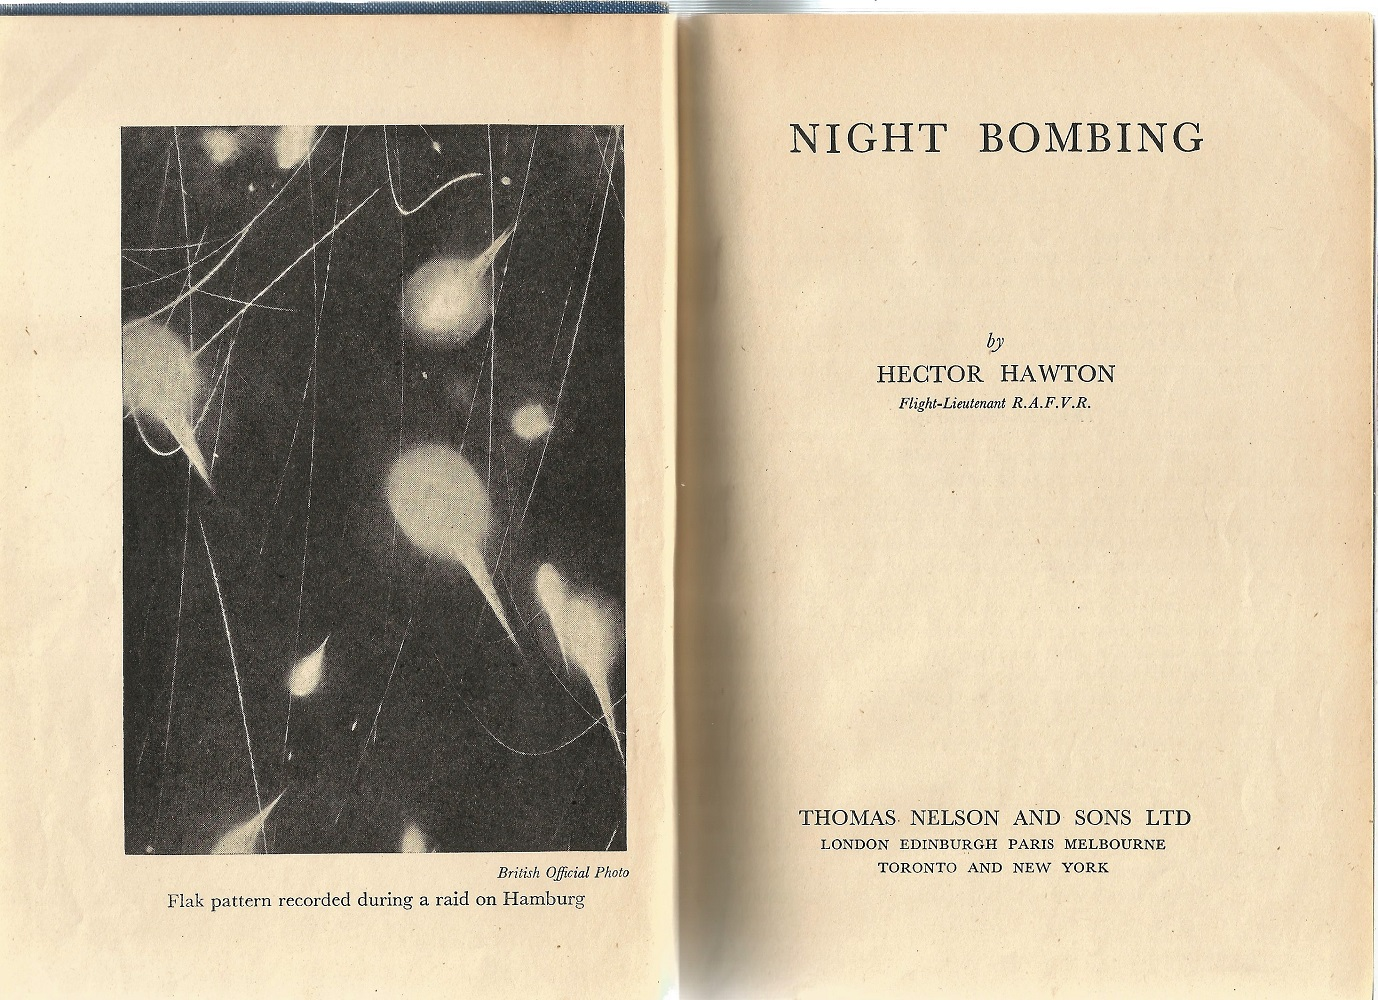 Flt Lt Hector Hawton. Night Bombing. A First Edition Signed Hardback book. Signed by Leonard V - Image 3 of 3